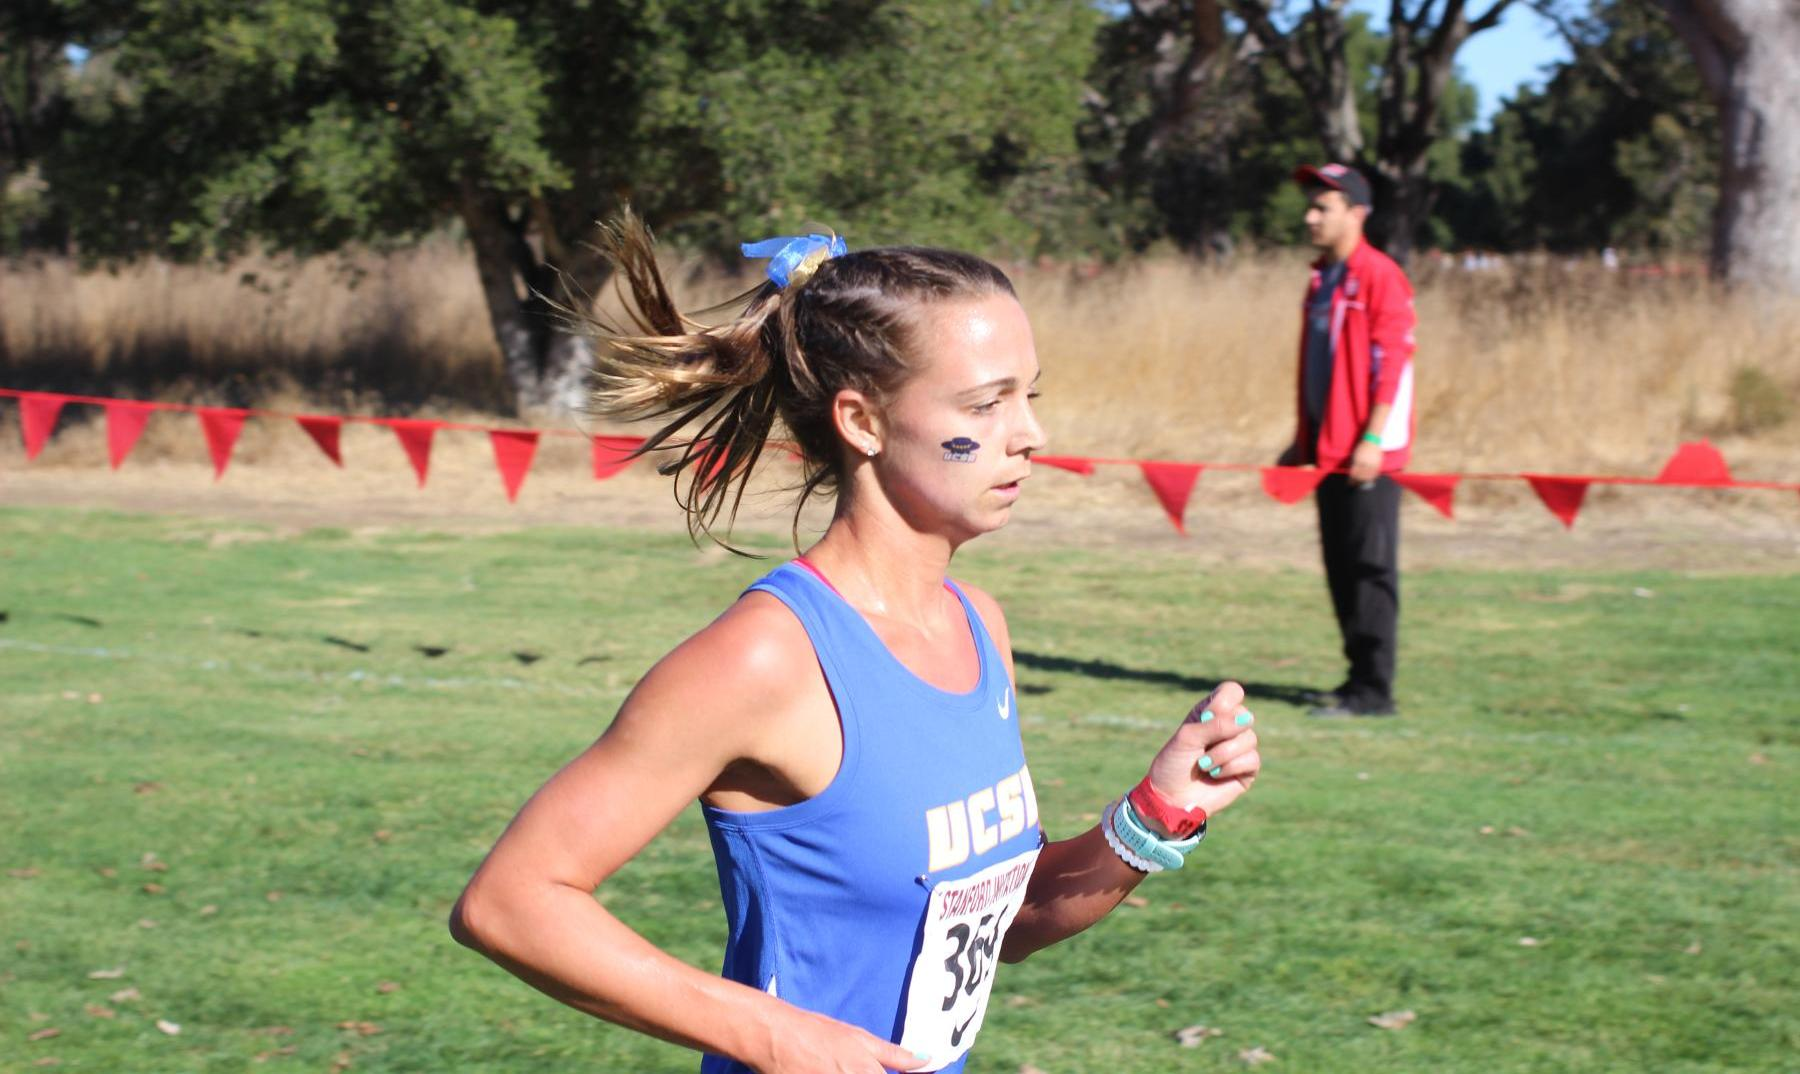 Top 3 Finishes for Gaucho Cross Country